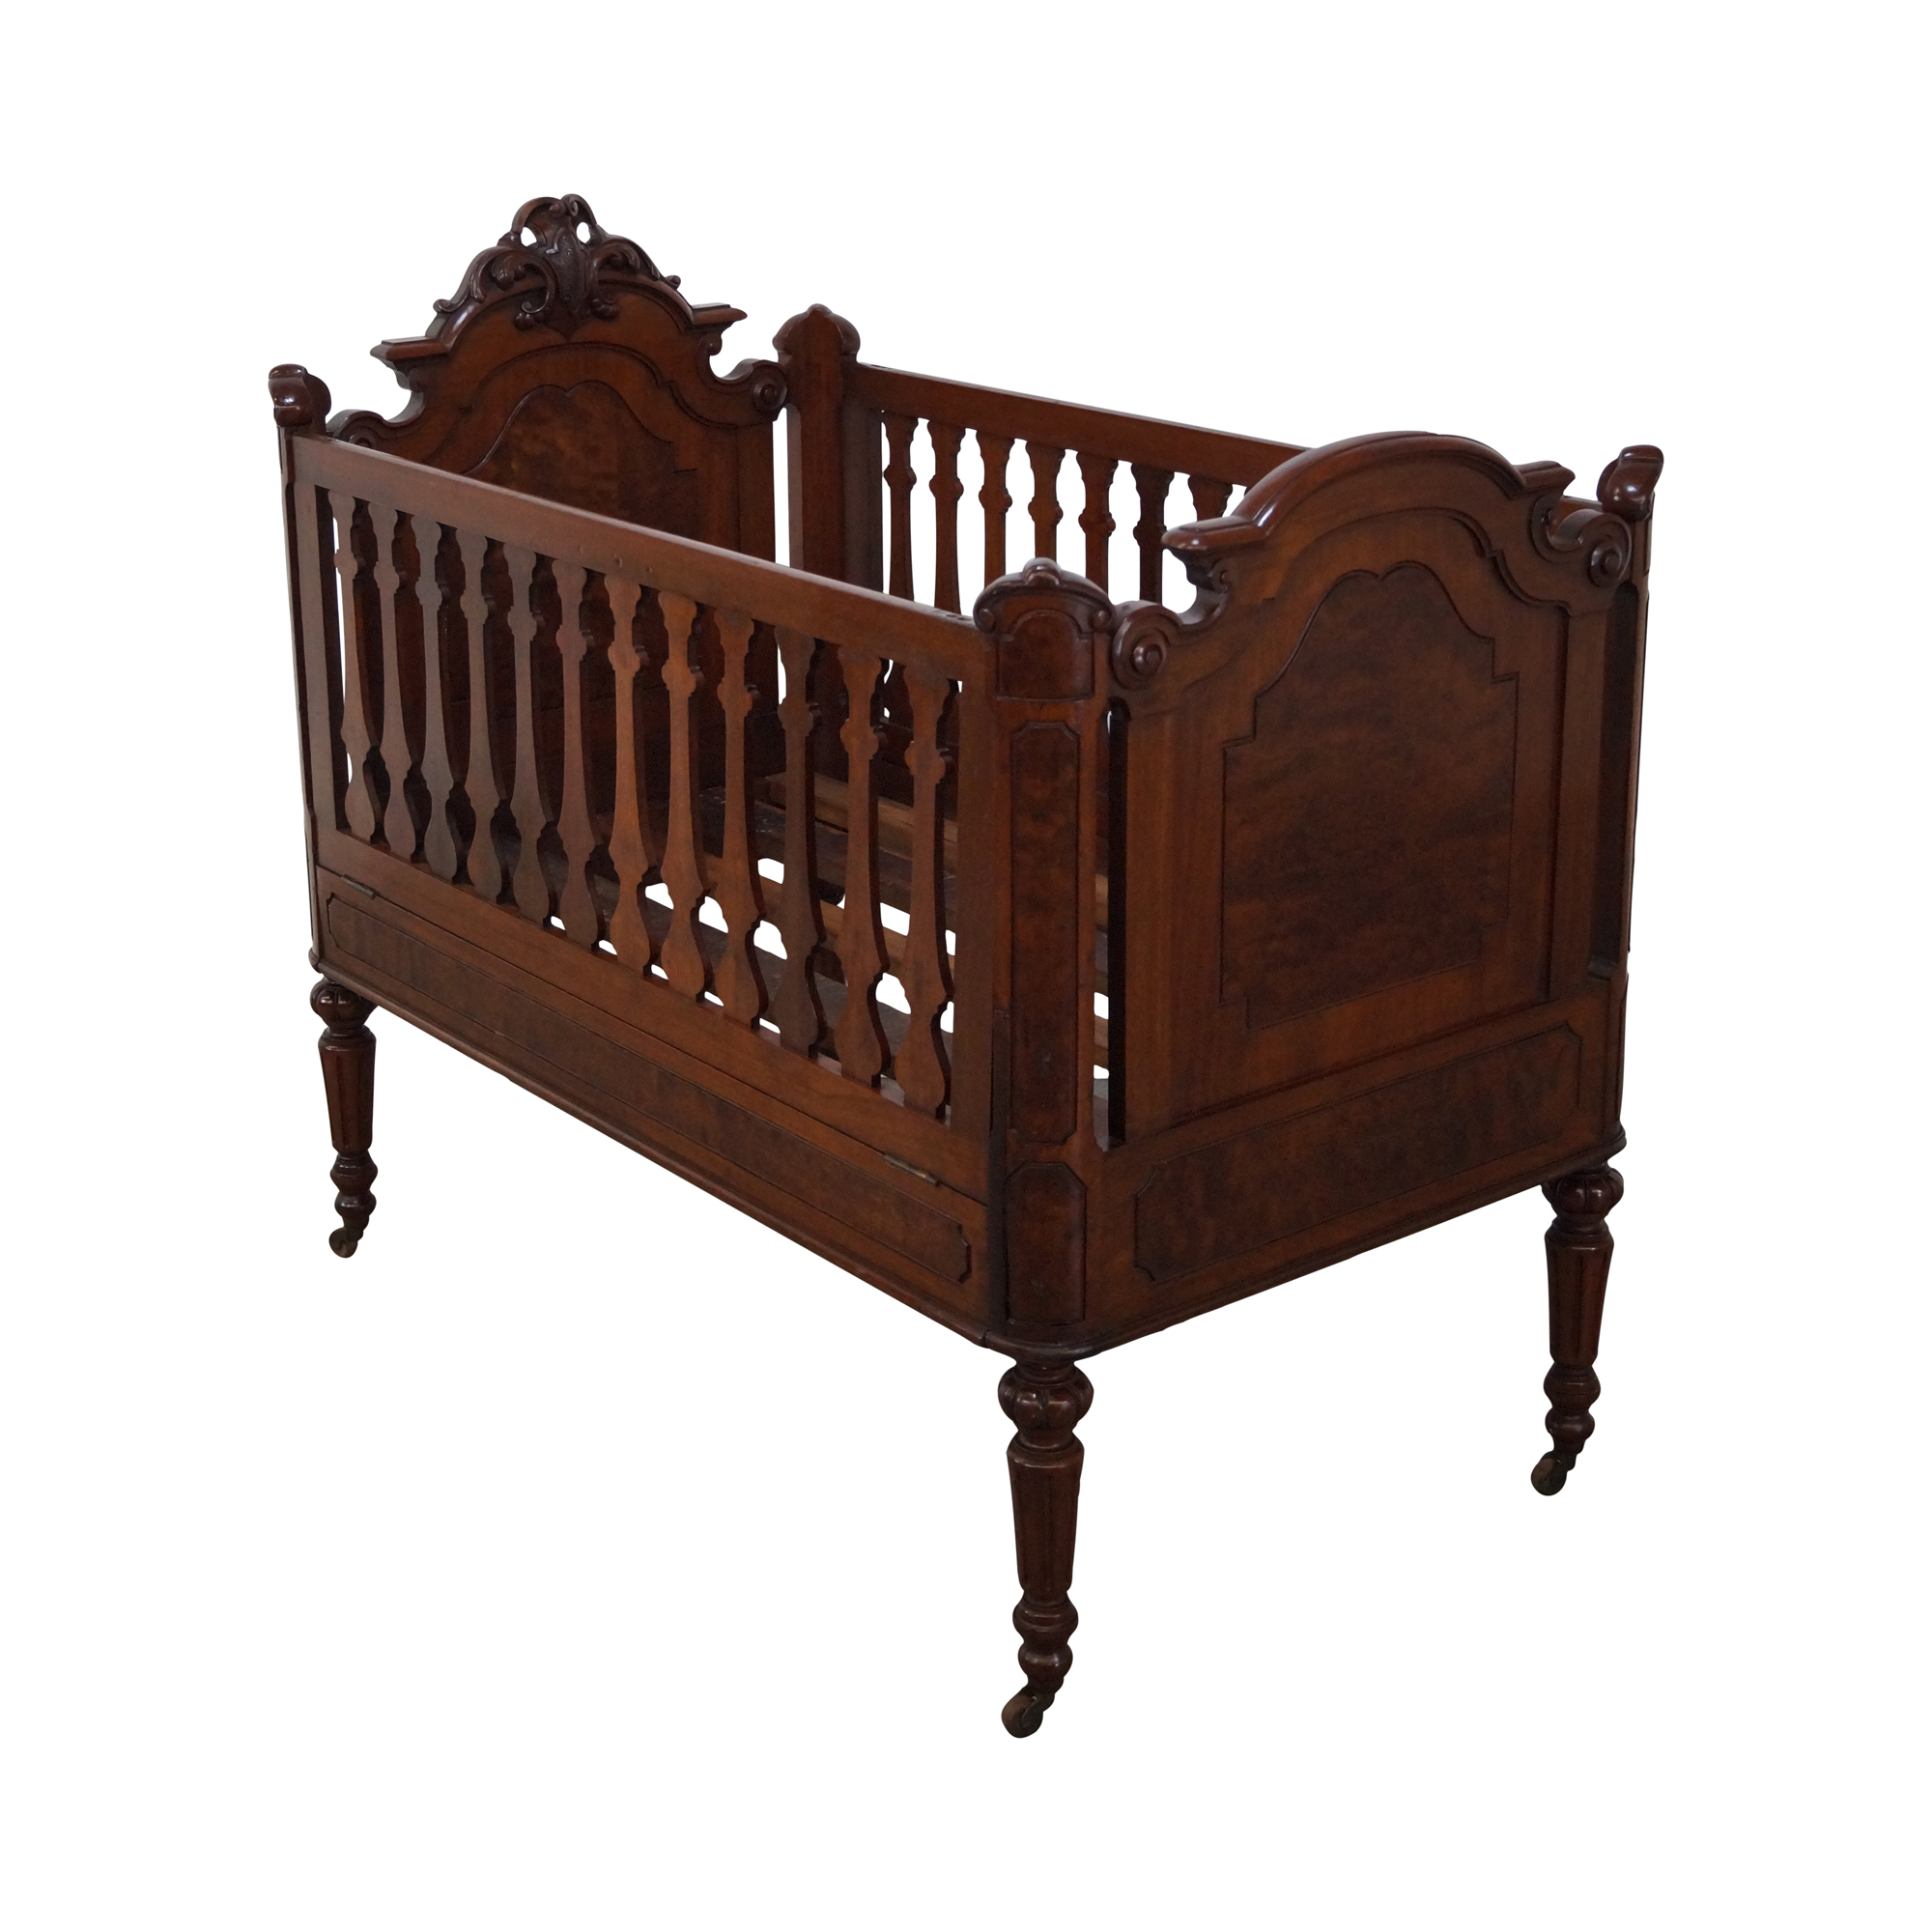 of available antique cribs display crib vintage for baby only very wood rolling bed